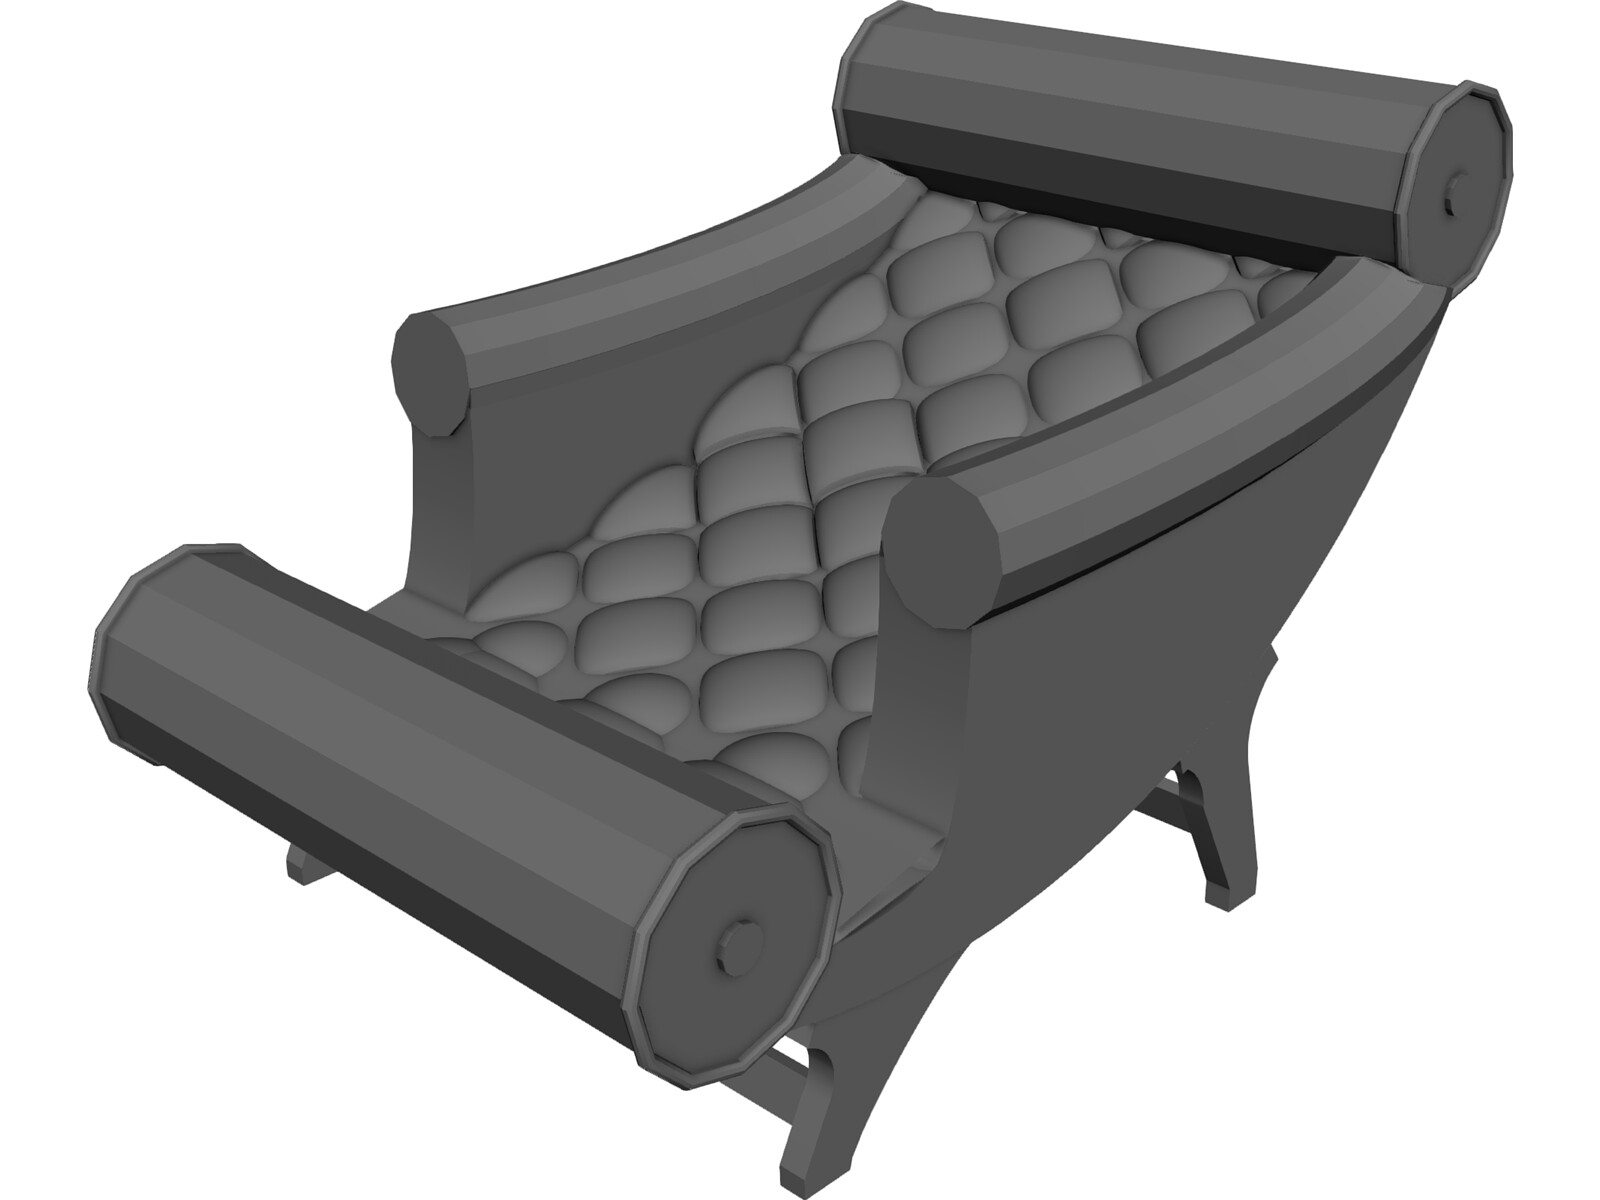 Adolf Loos Chaise LoungeFree